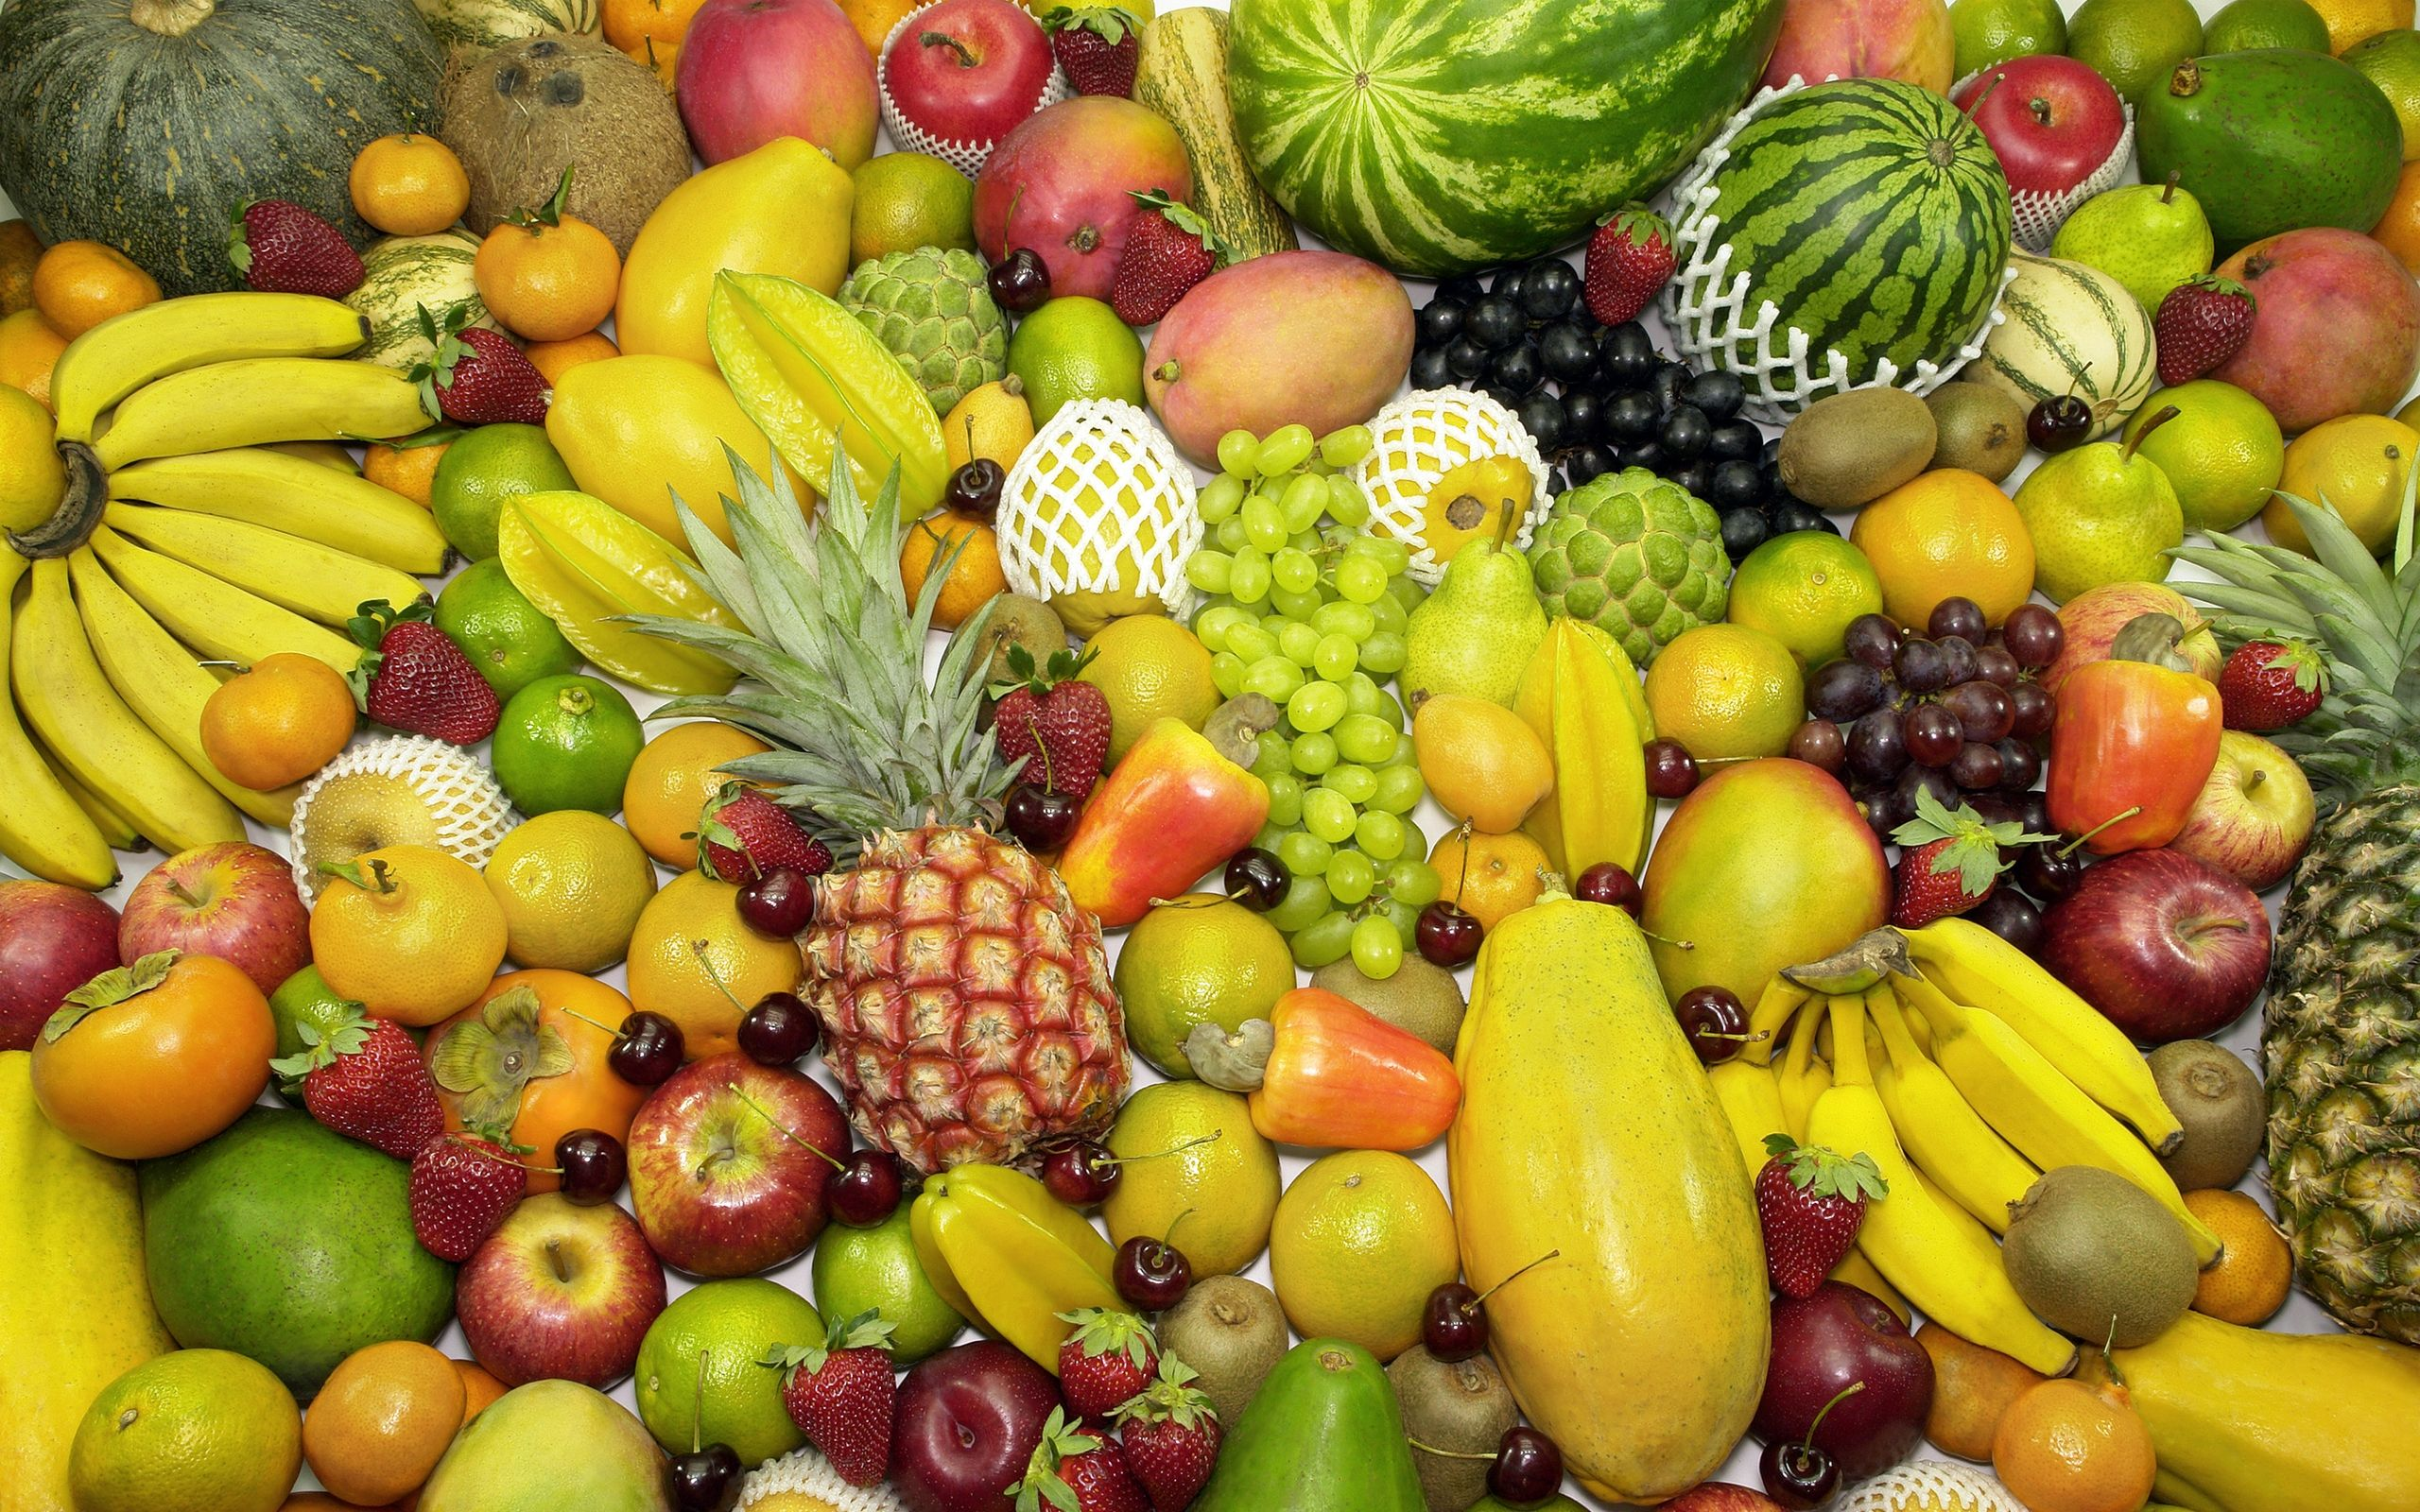 Fruits wallpaper hd in 2020 food cures cancer fighting